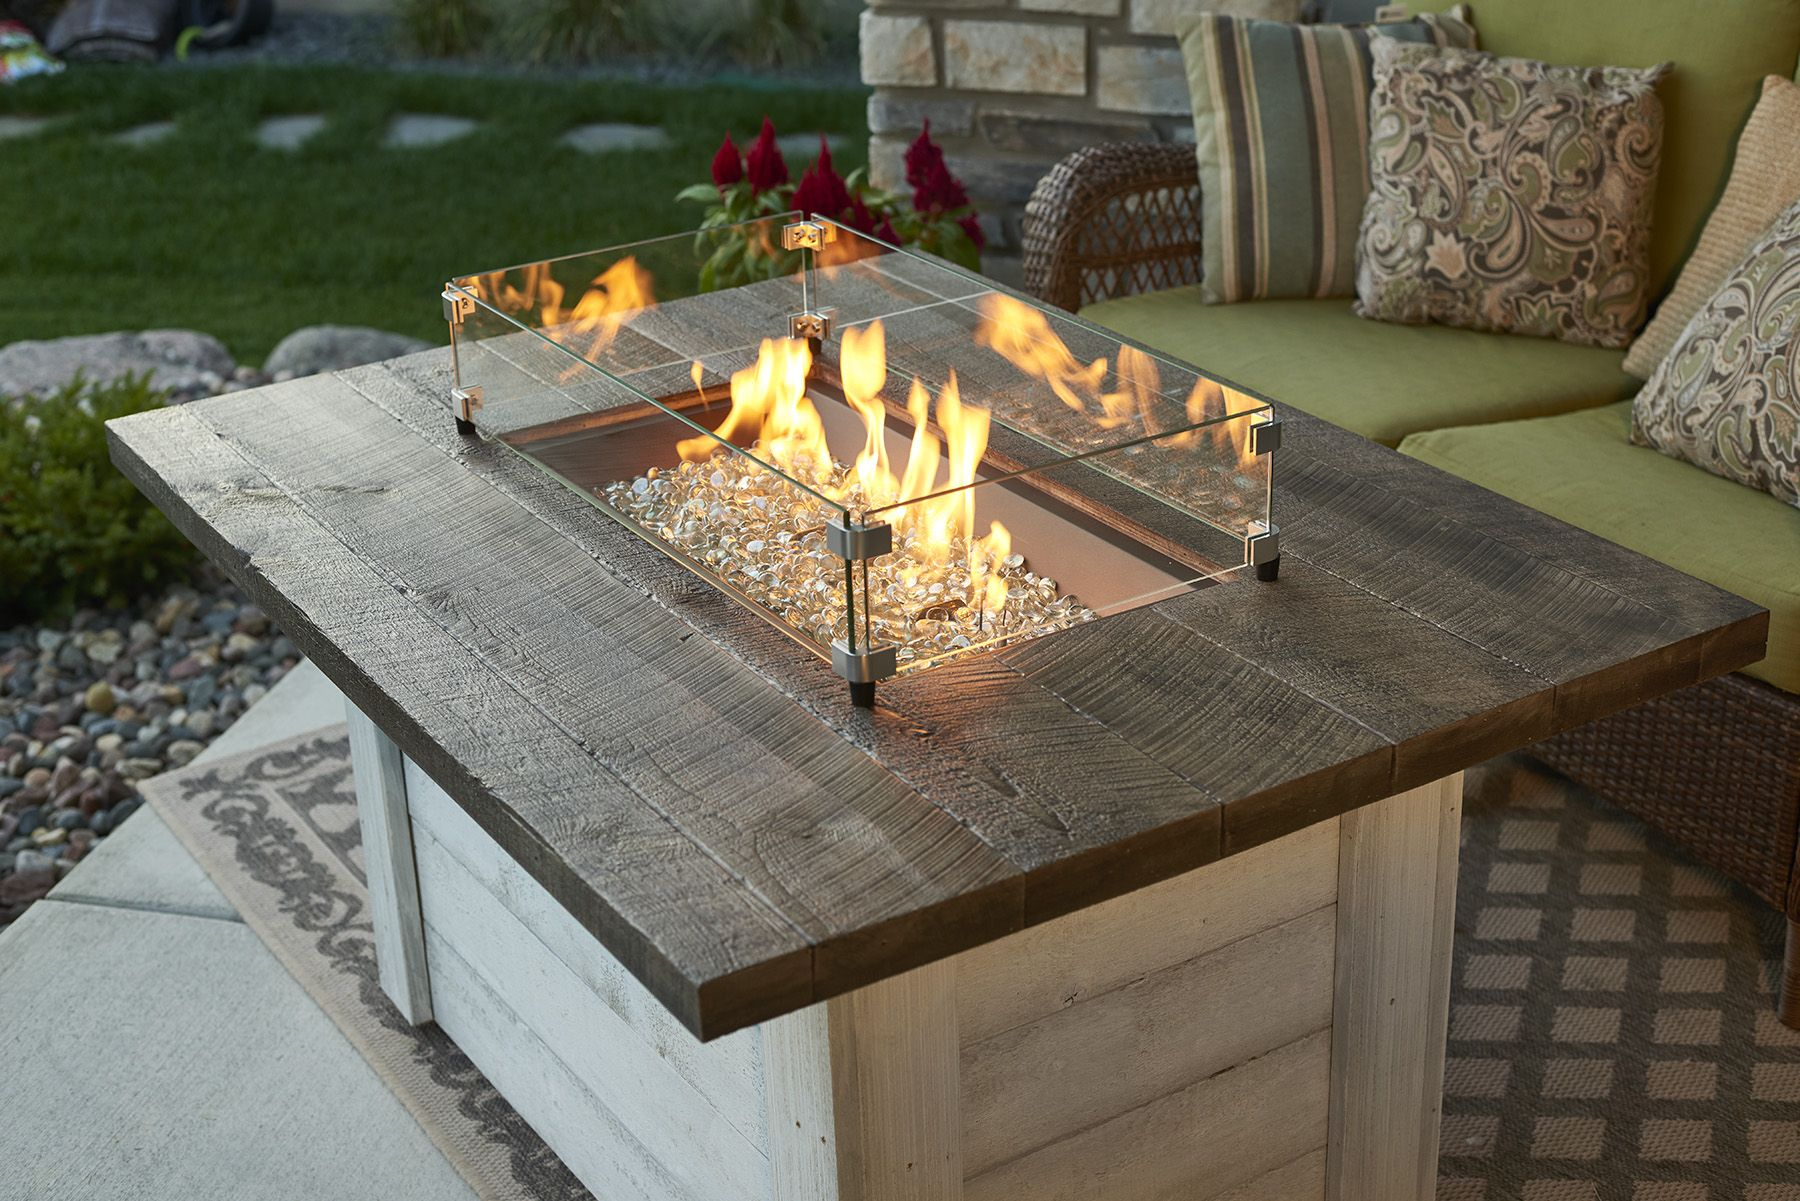 alcott fire pit table a gorgeous fire table with a stunning flame